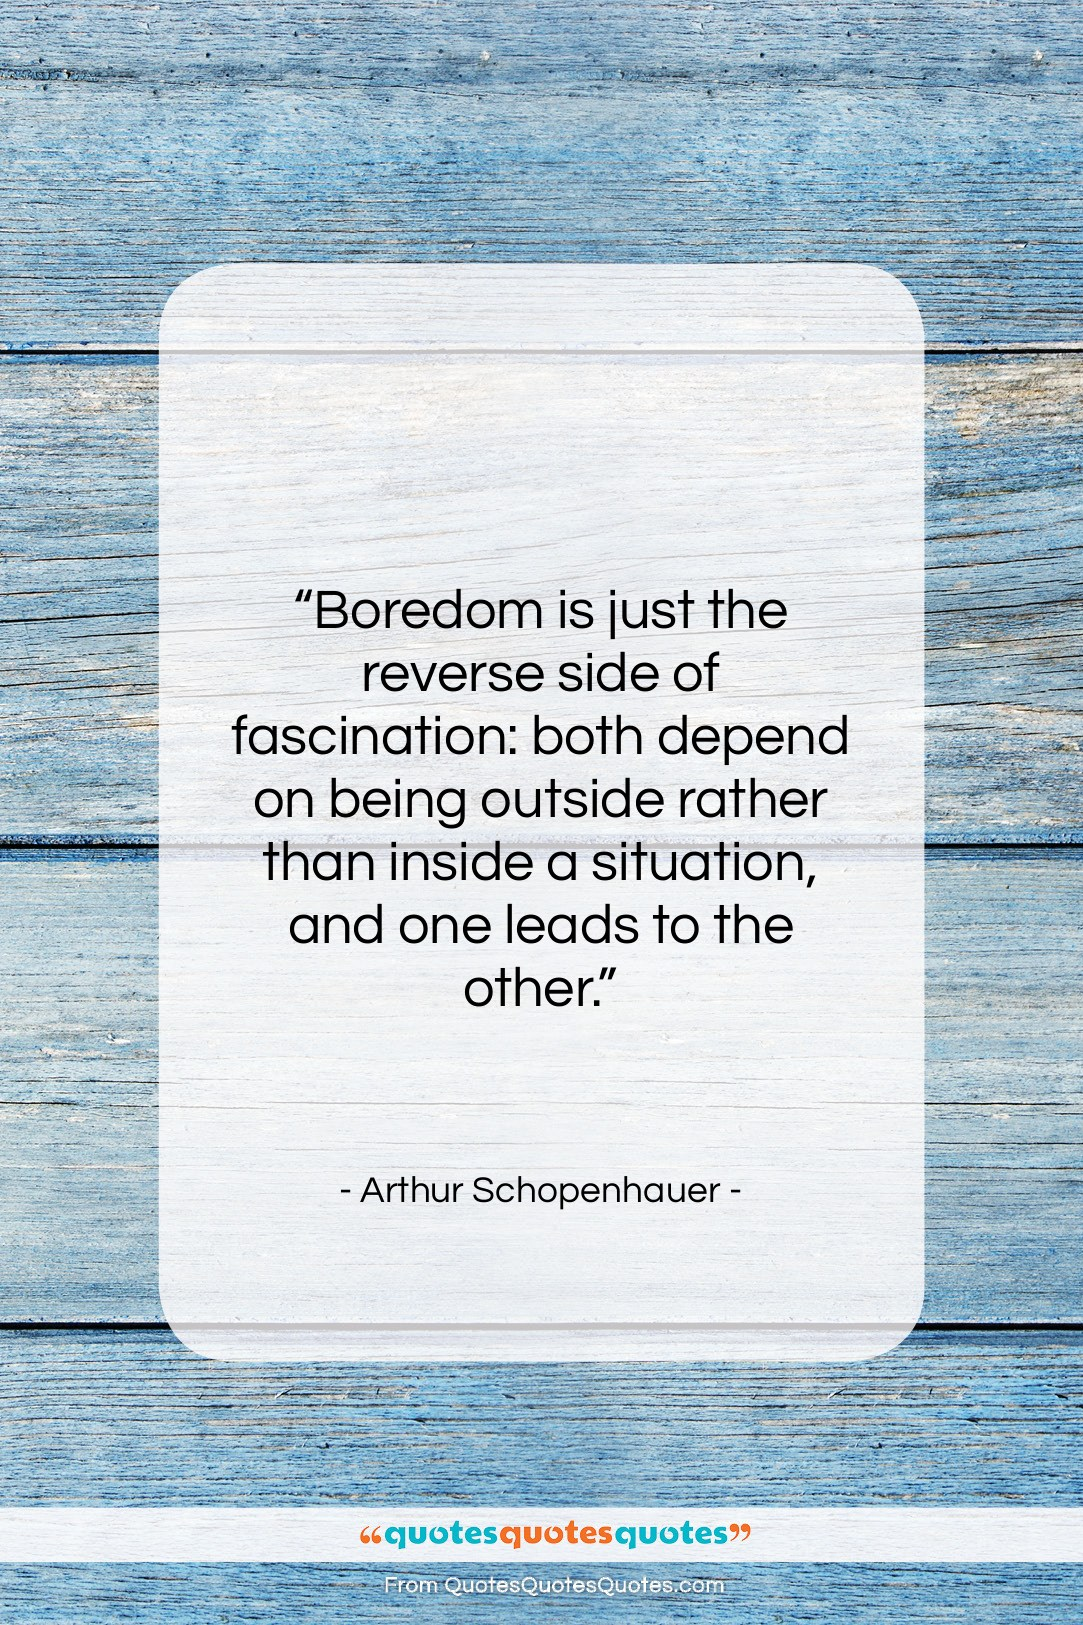 """Arthur Schopenhauer quote: """"Boredom is just the reverse side of…""""- at QuotesQuotesQuotes.com"""